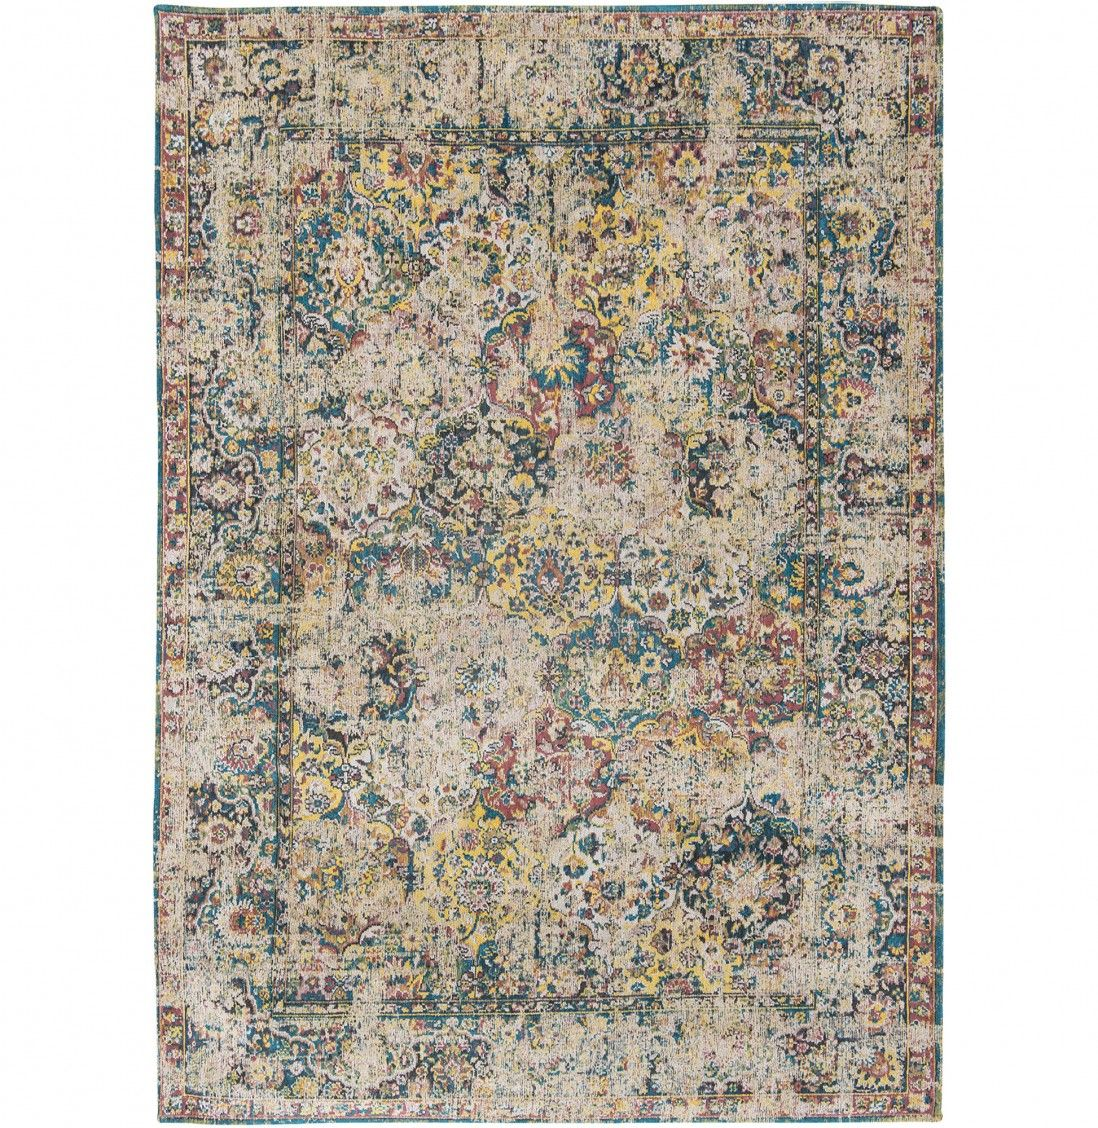 TAPETE HERITAGE CHENILLE 140x200 8711